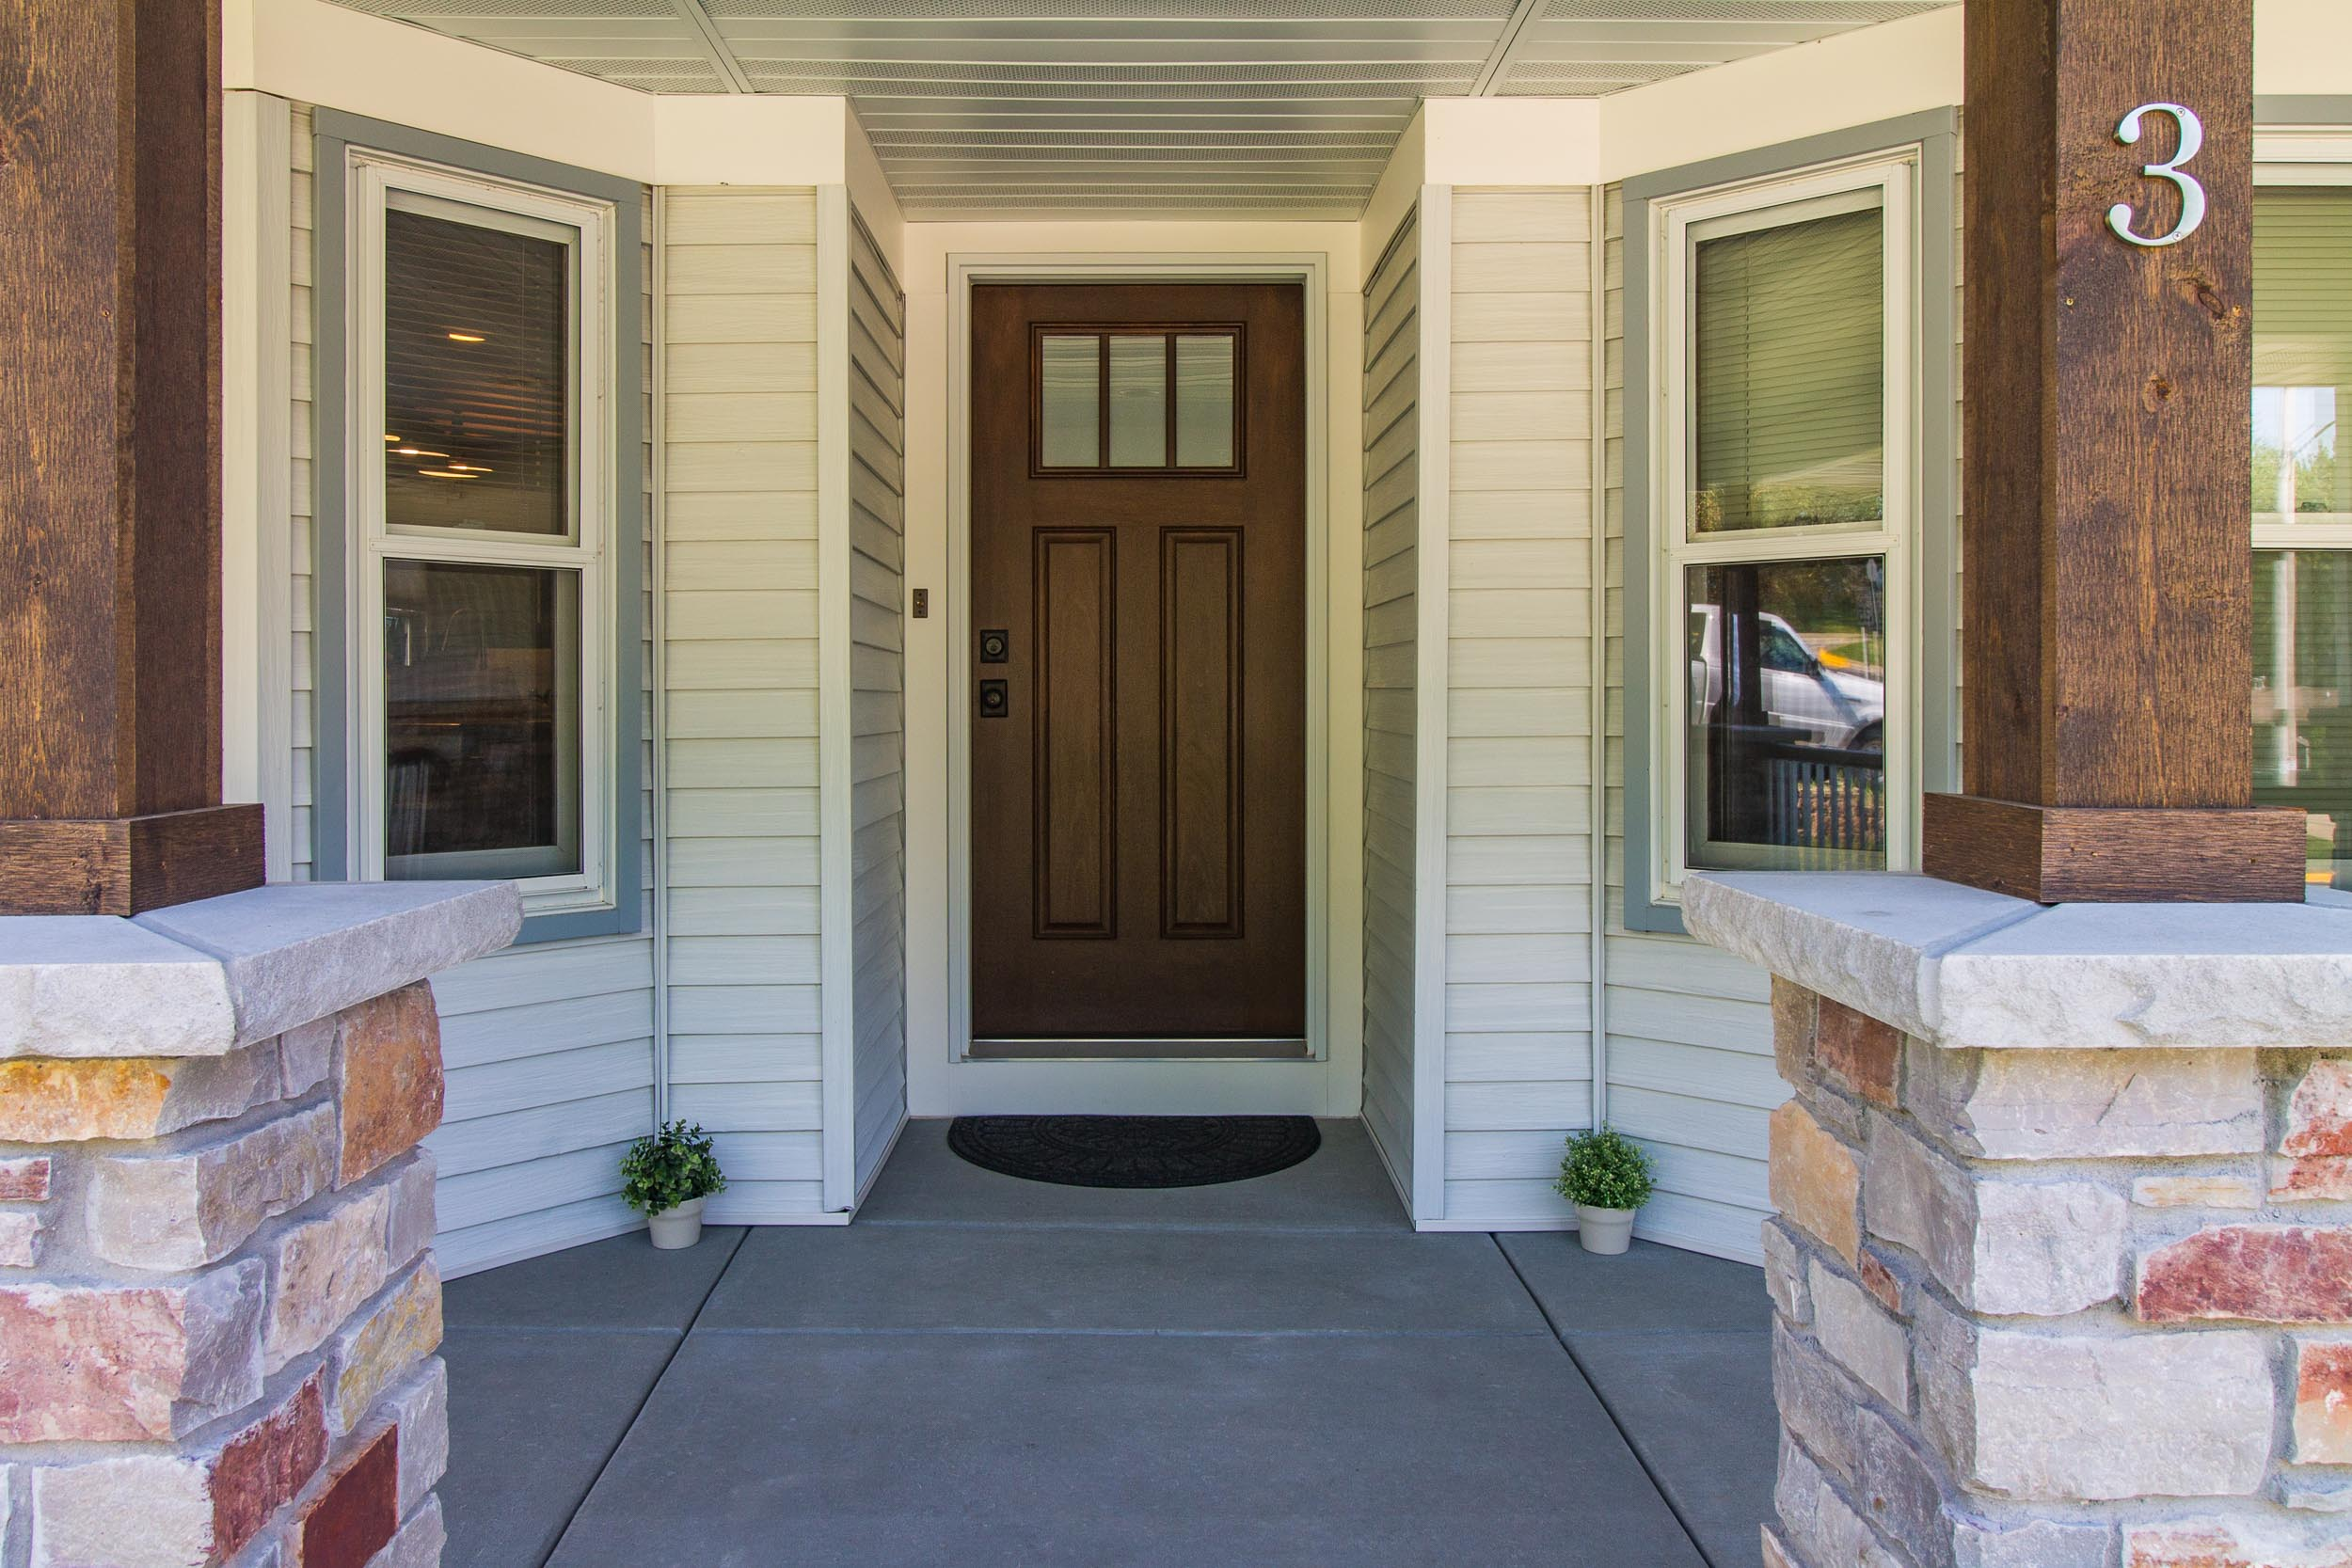 Remodeled Home with Porch Addition, Wisconsin